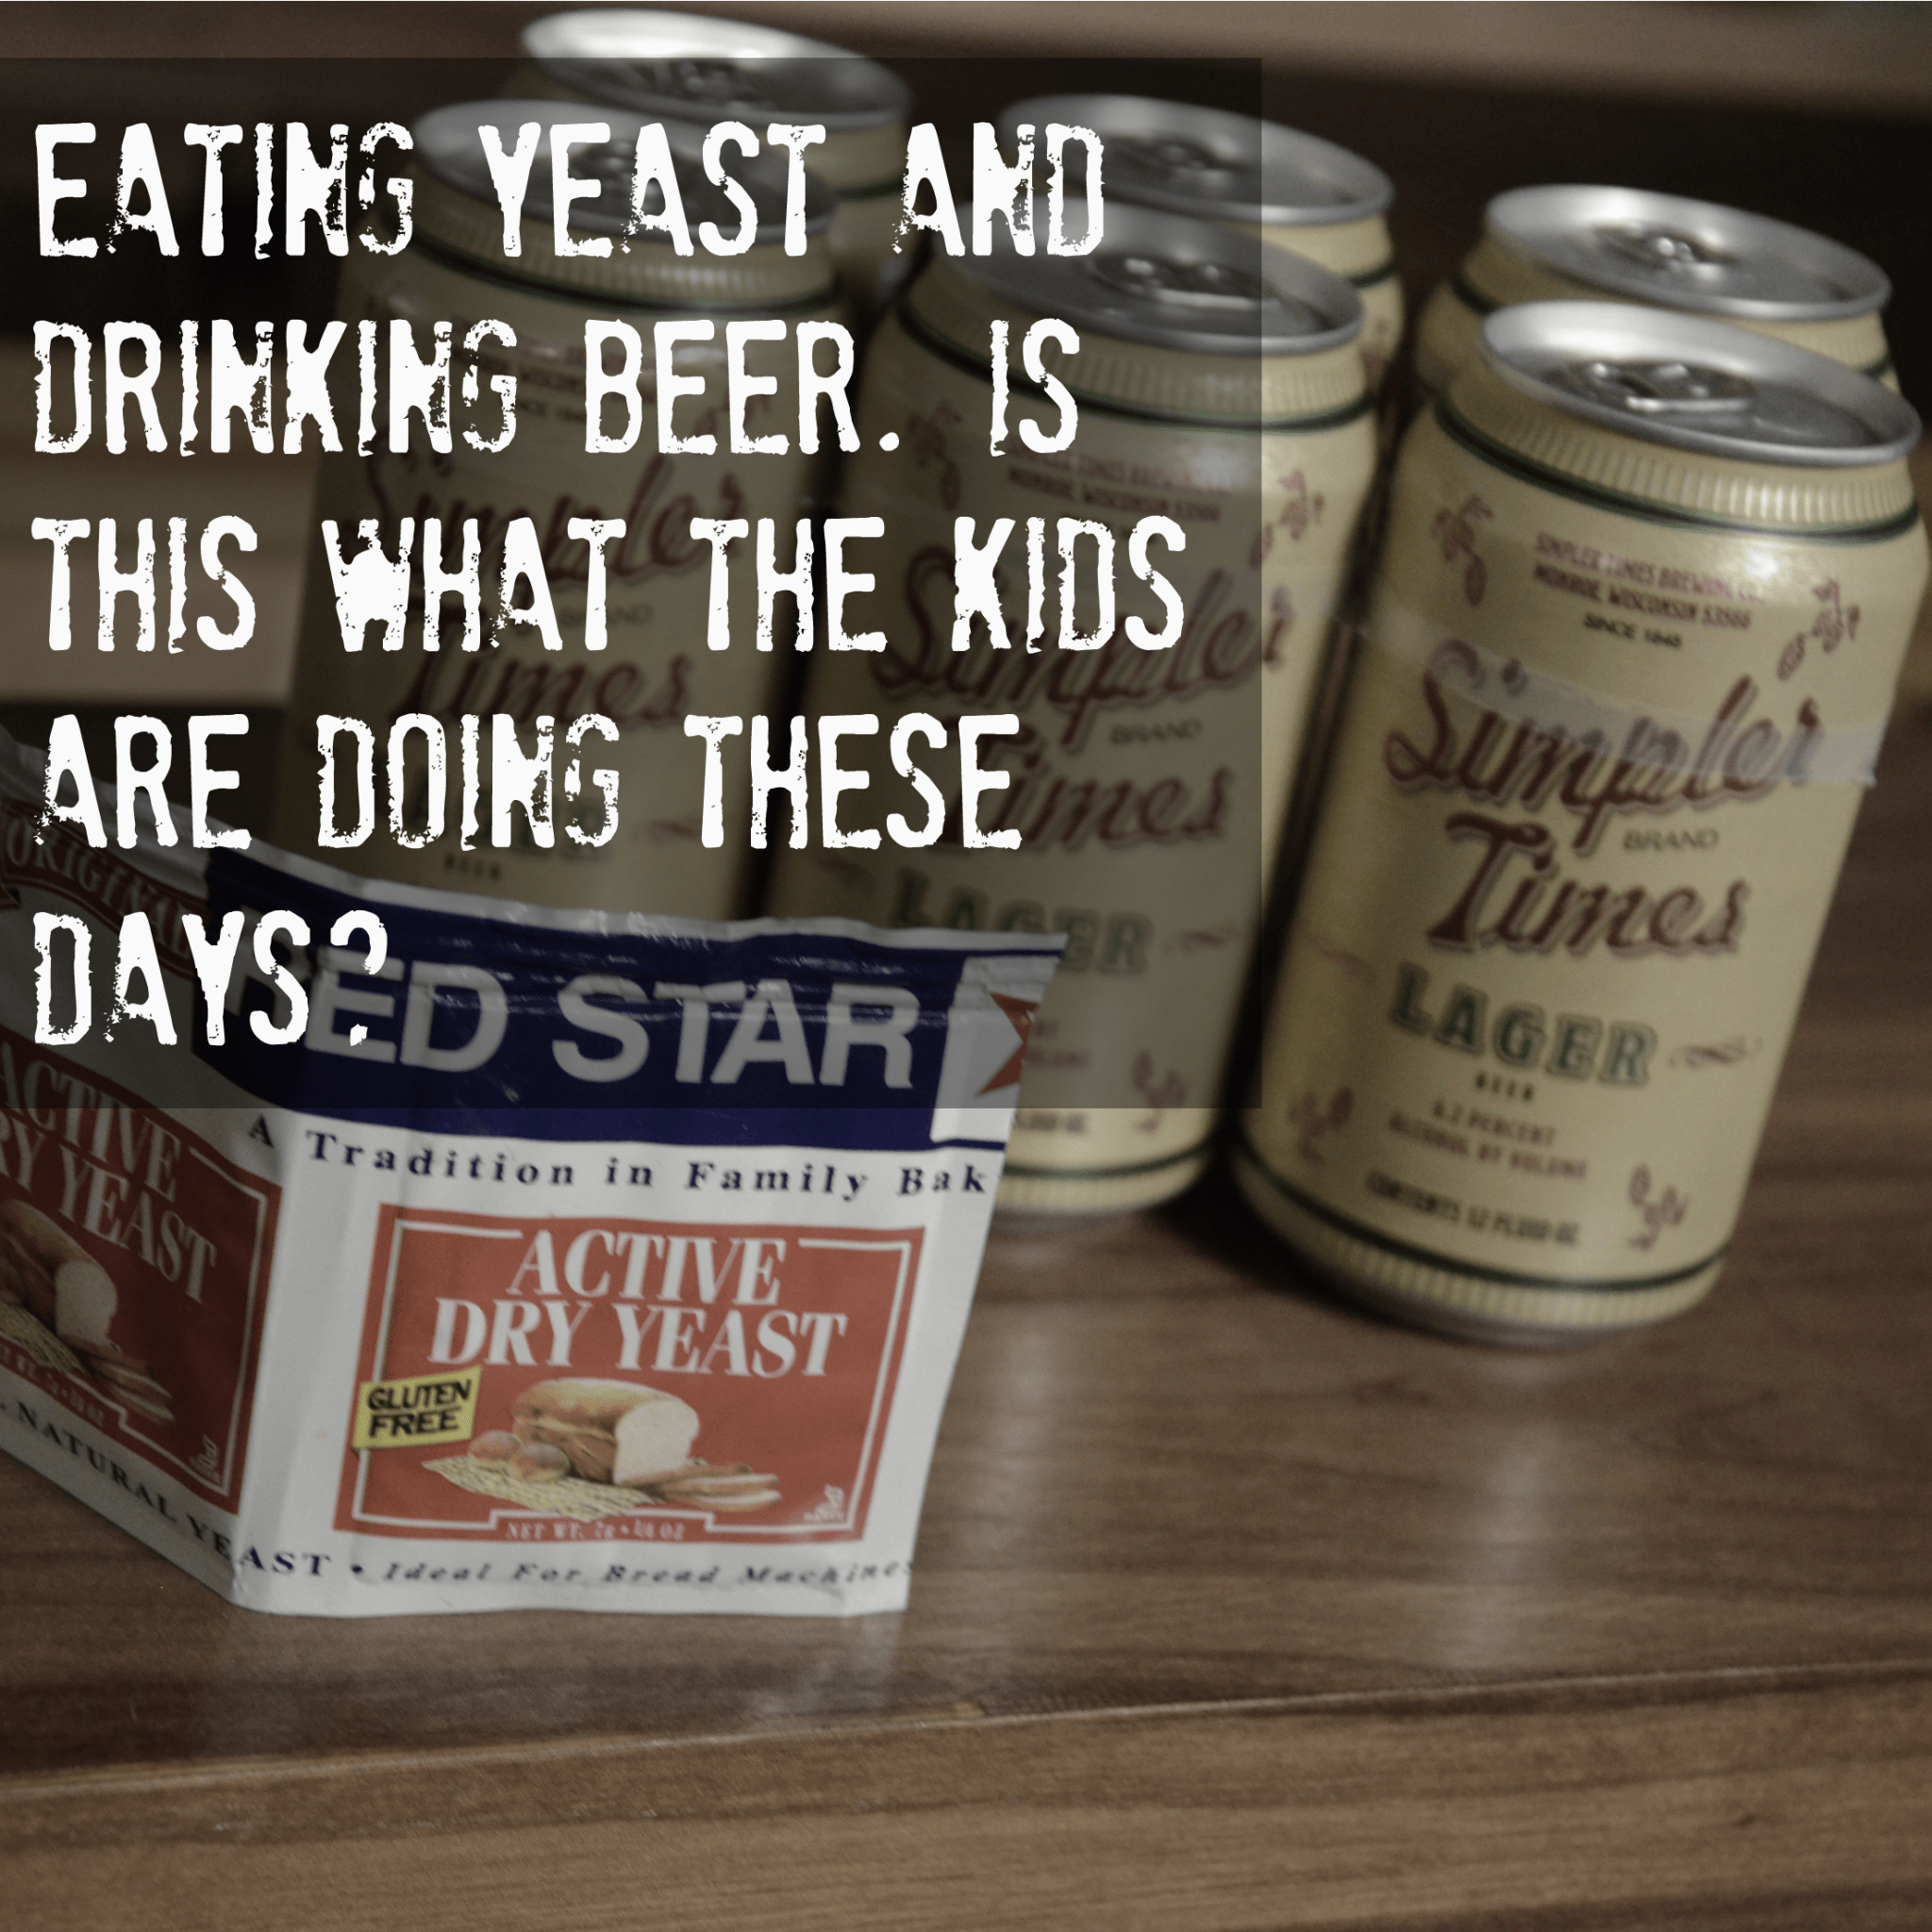 Will Eating Yeast Before Drinking